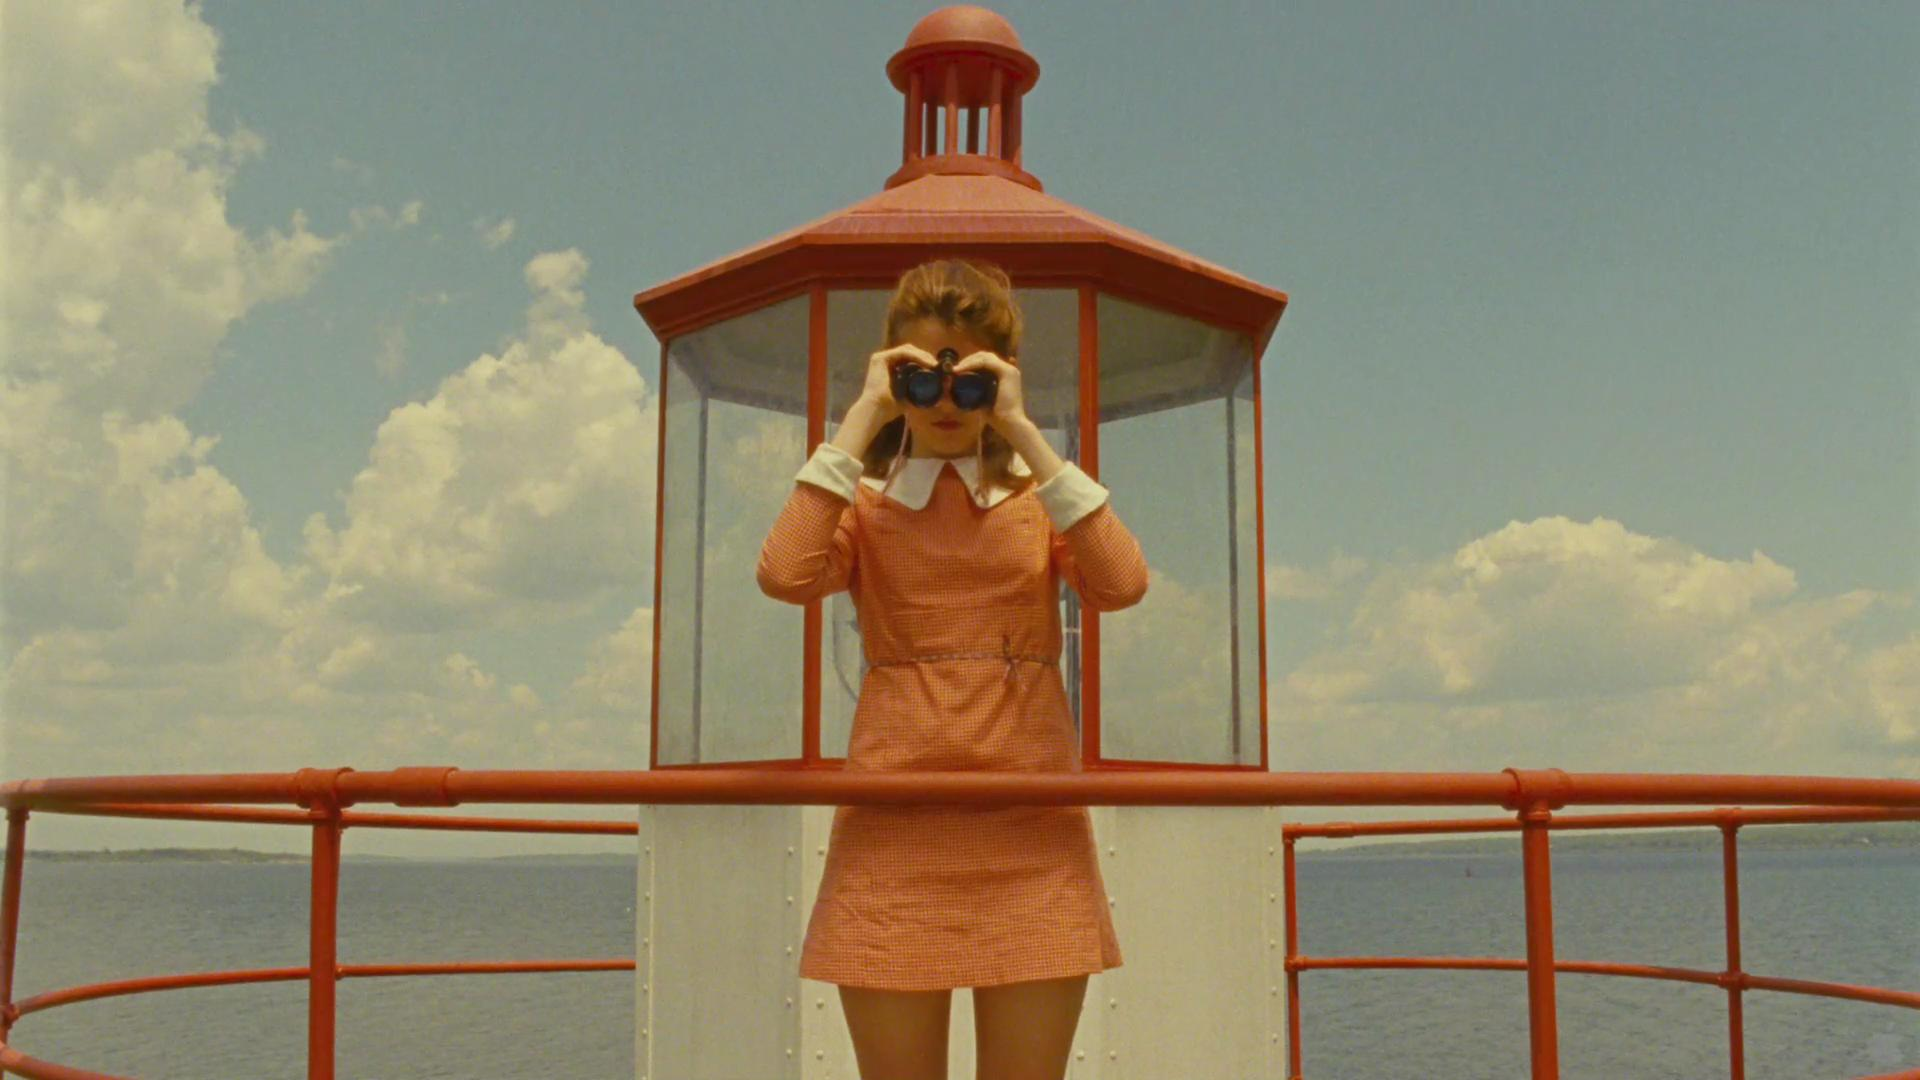 """Moonrise Kingdom"" di Wes Anderson - Screenshot catturato dal trailer HD del film disponibile sul sito iTunes Movie Trailers. Tramite Wikipedia - http://it.wikipedia.org/wiki/File:Moonrise_Kingdom.JPG#mediaviewer/File:Moonrise_Kingdom.JPG"